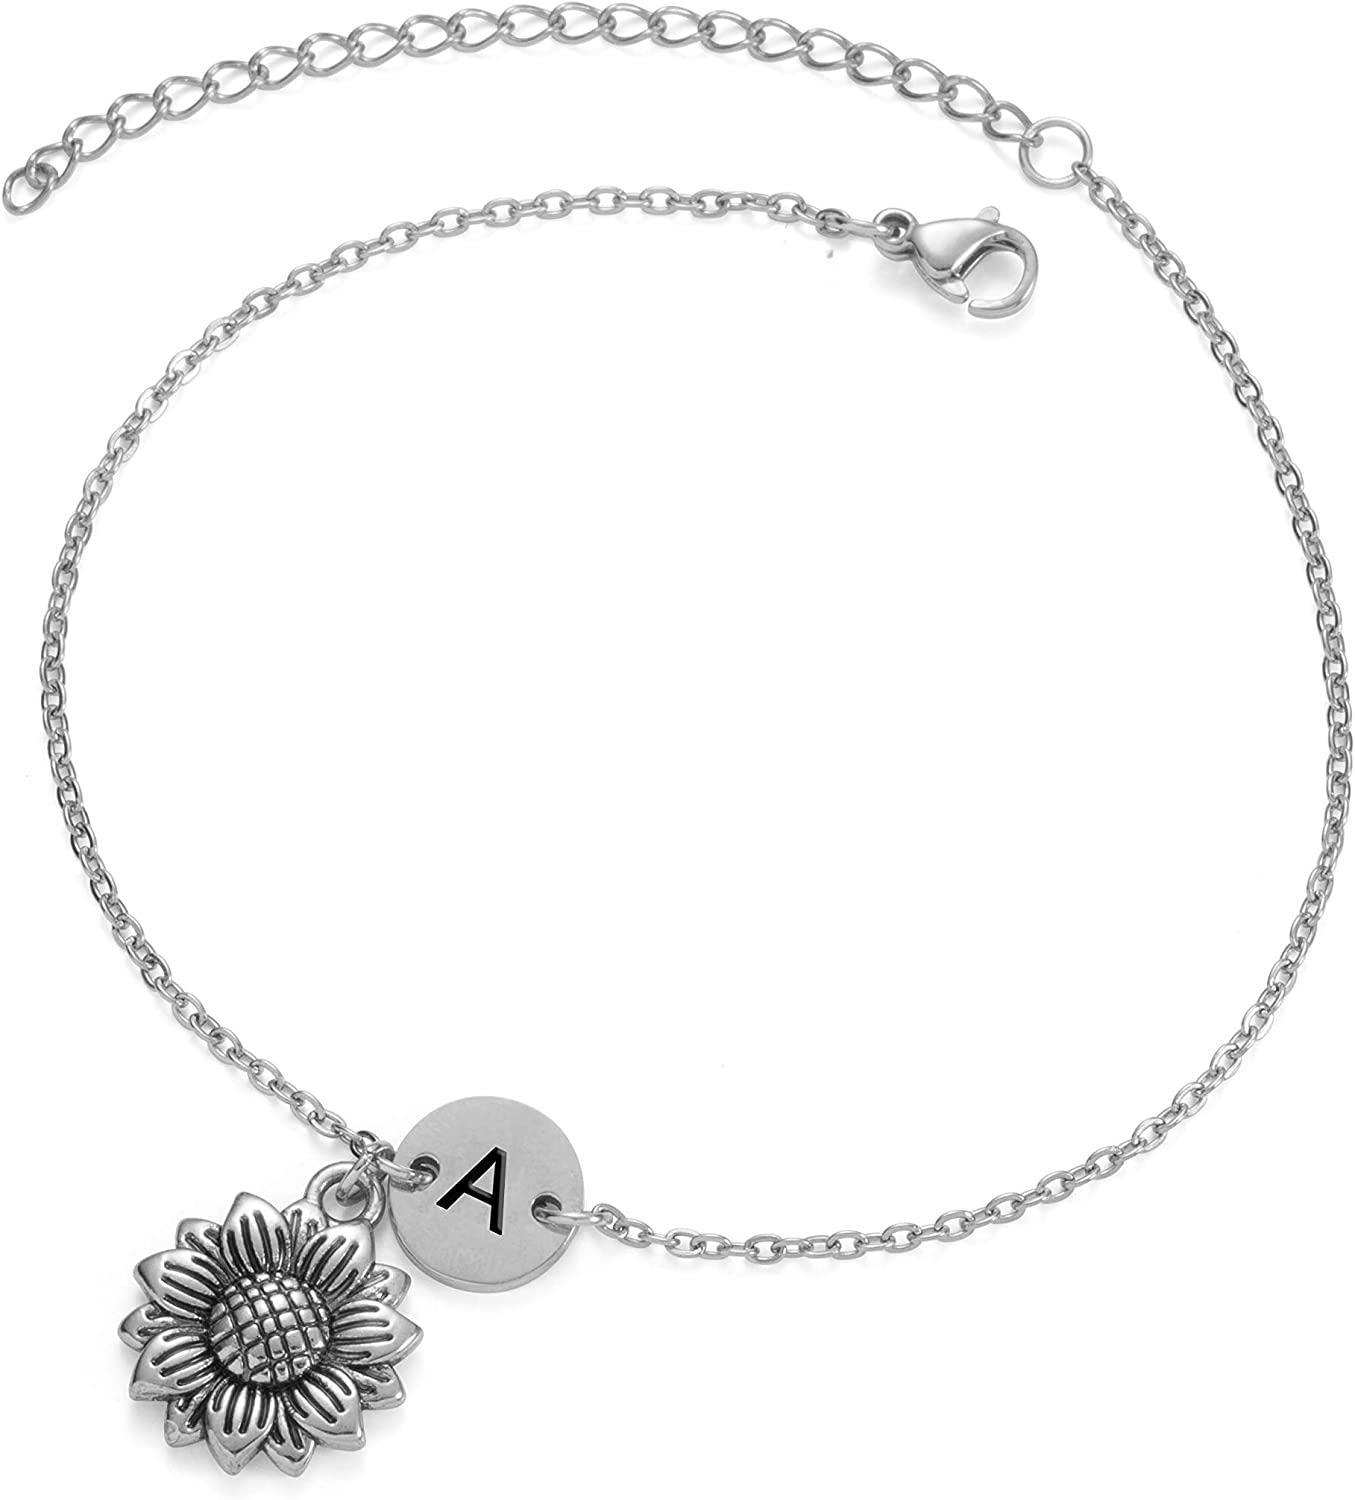 Joycuff Anklets for Women with Initial Silver Sunflower Charm Link Jewelry Foot Bracelets for Teen Girls Alphabet A to Z